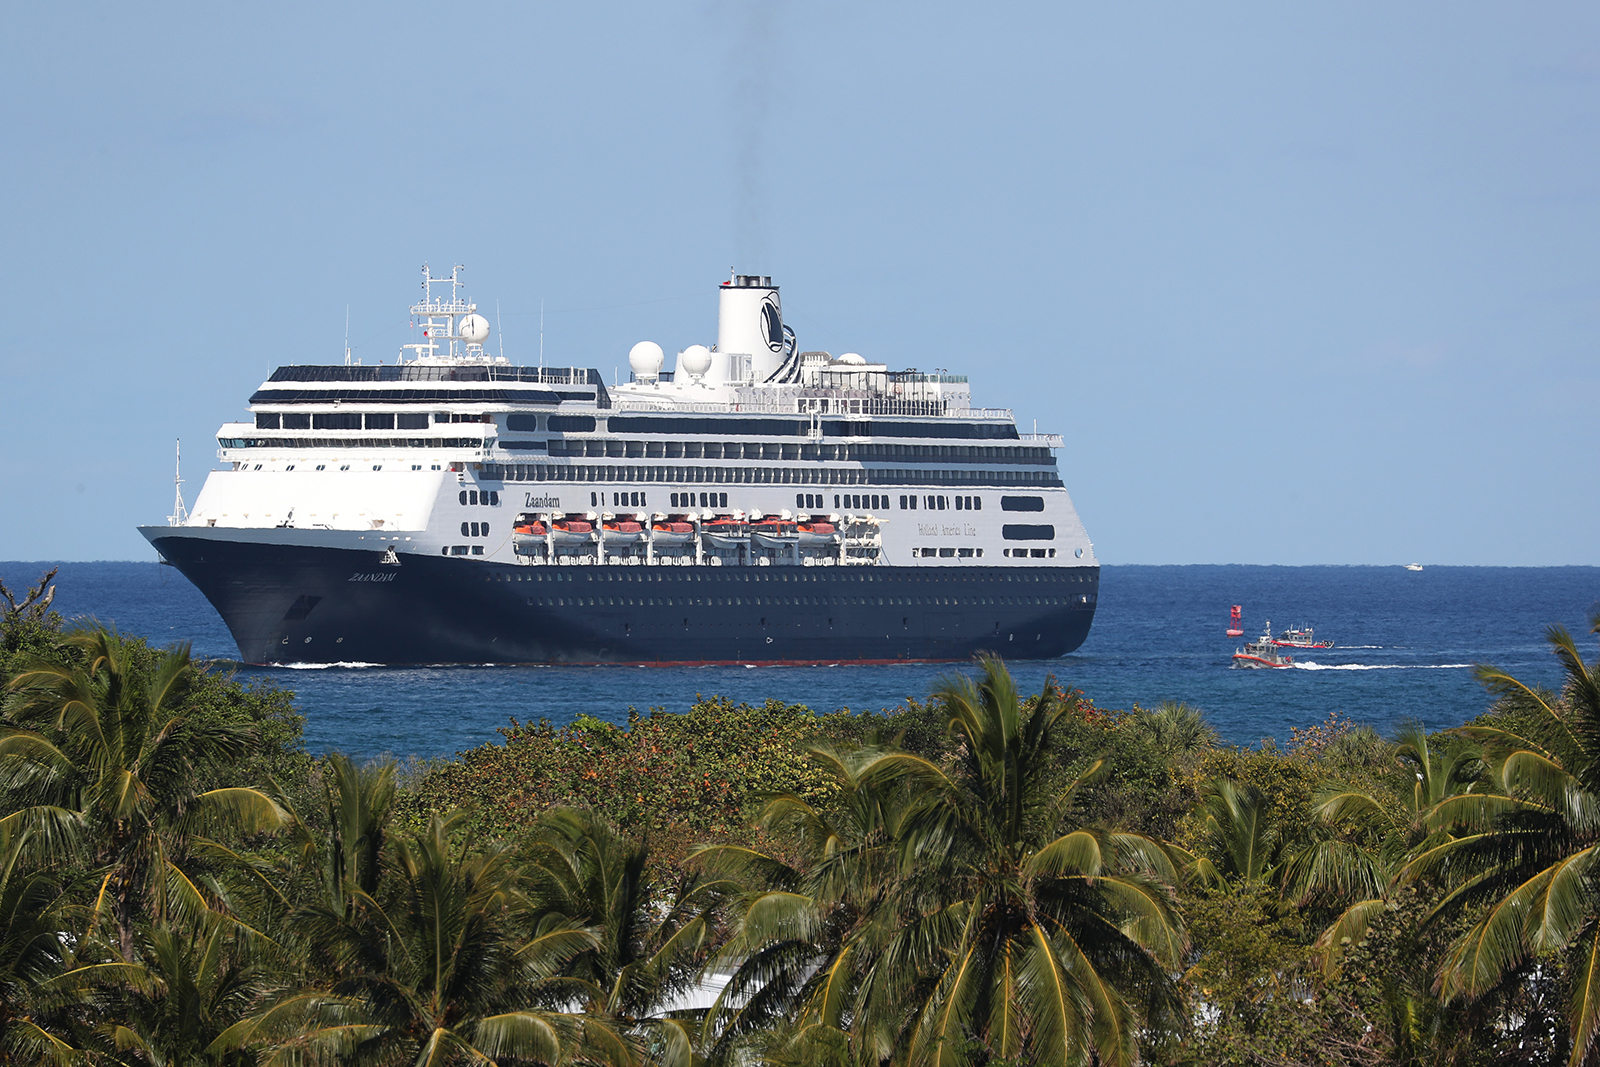 The Zaandam cruise ship prepares to come into Port Everglades on April 2, in Fort Lauderdale, Florida.